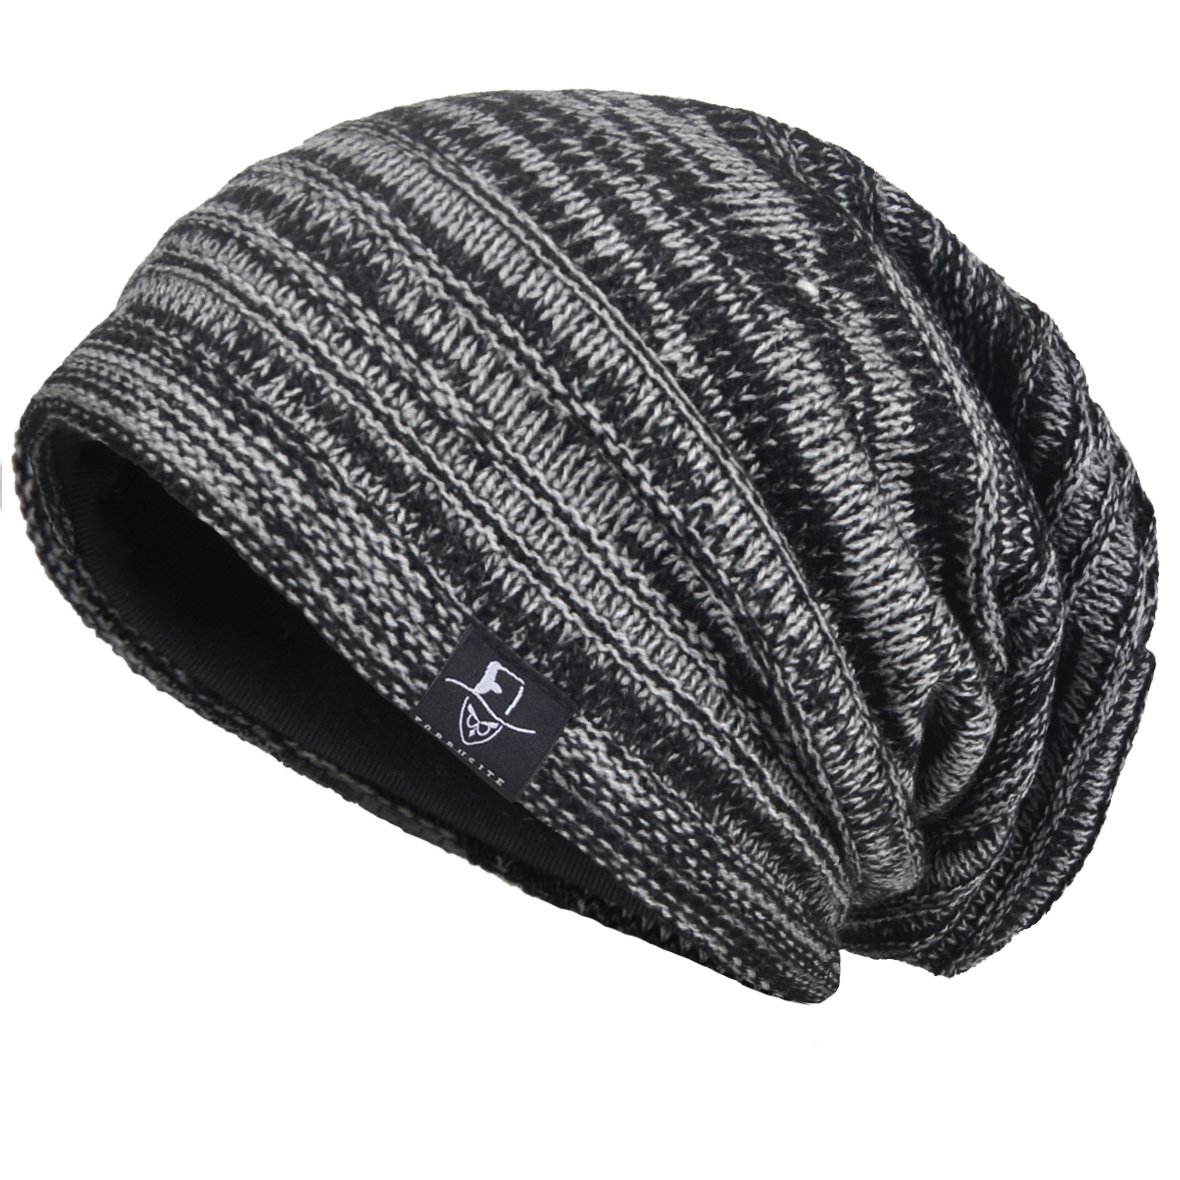 6d836898bed VECRY Mens Slouchy Knit Oversized Beanie Skull Caps Artistic Hats (Black)   Amazon.co.uk  Clothing